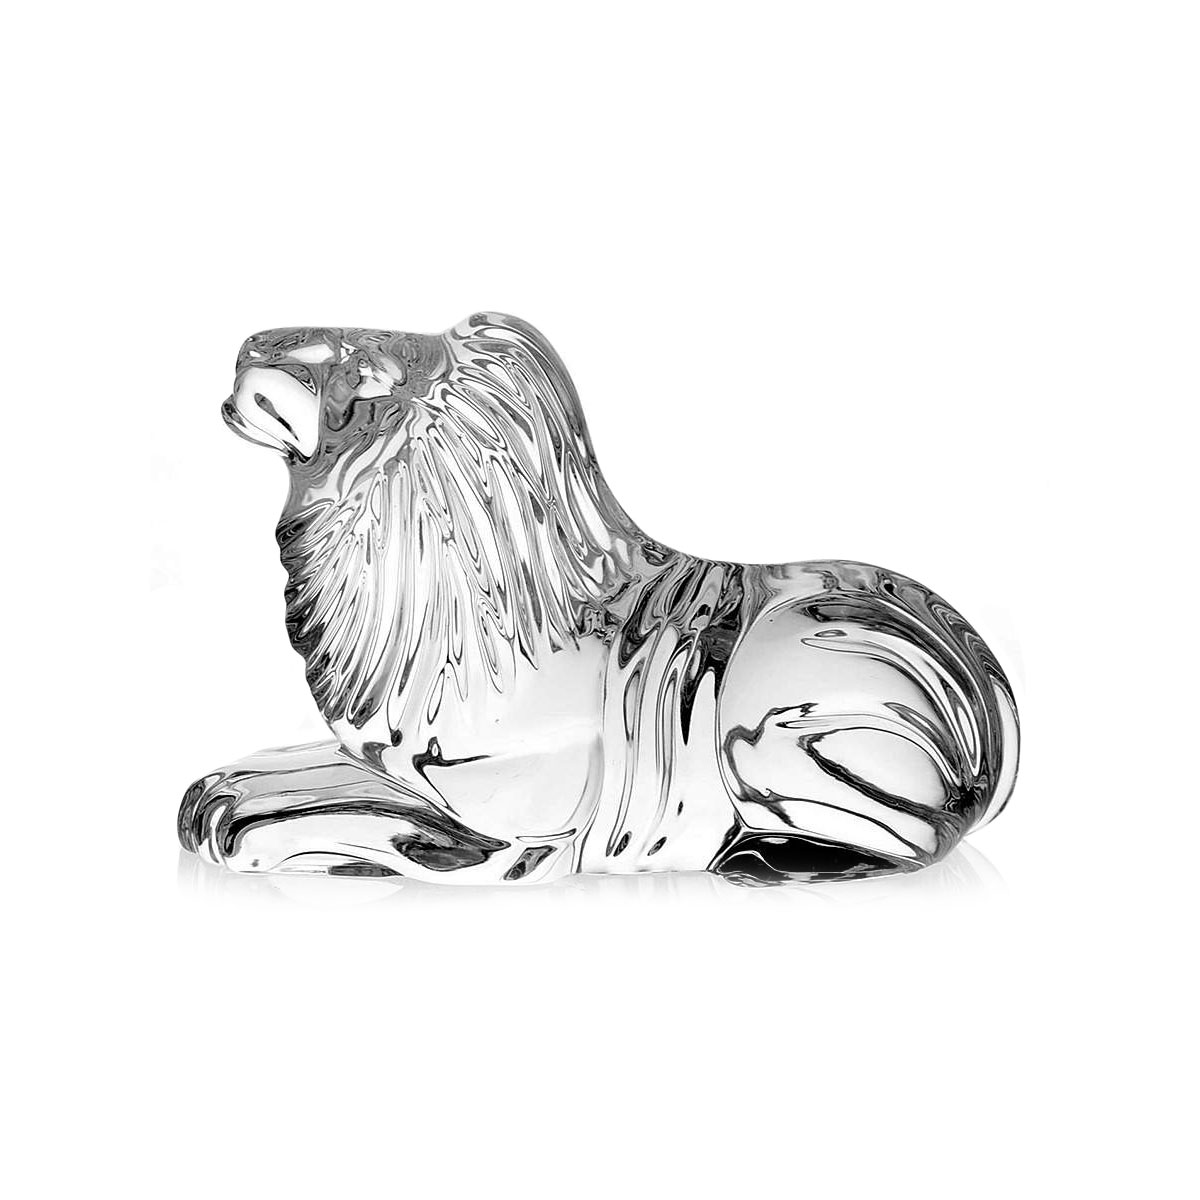 Waterford Crystal Lion Sculpture